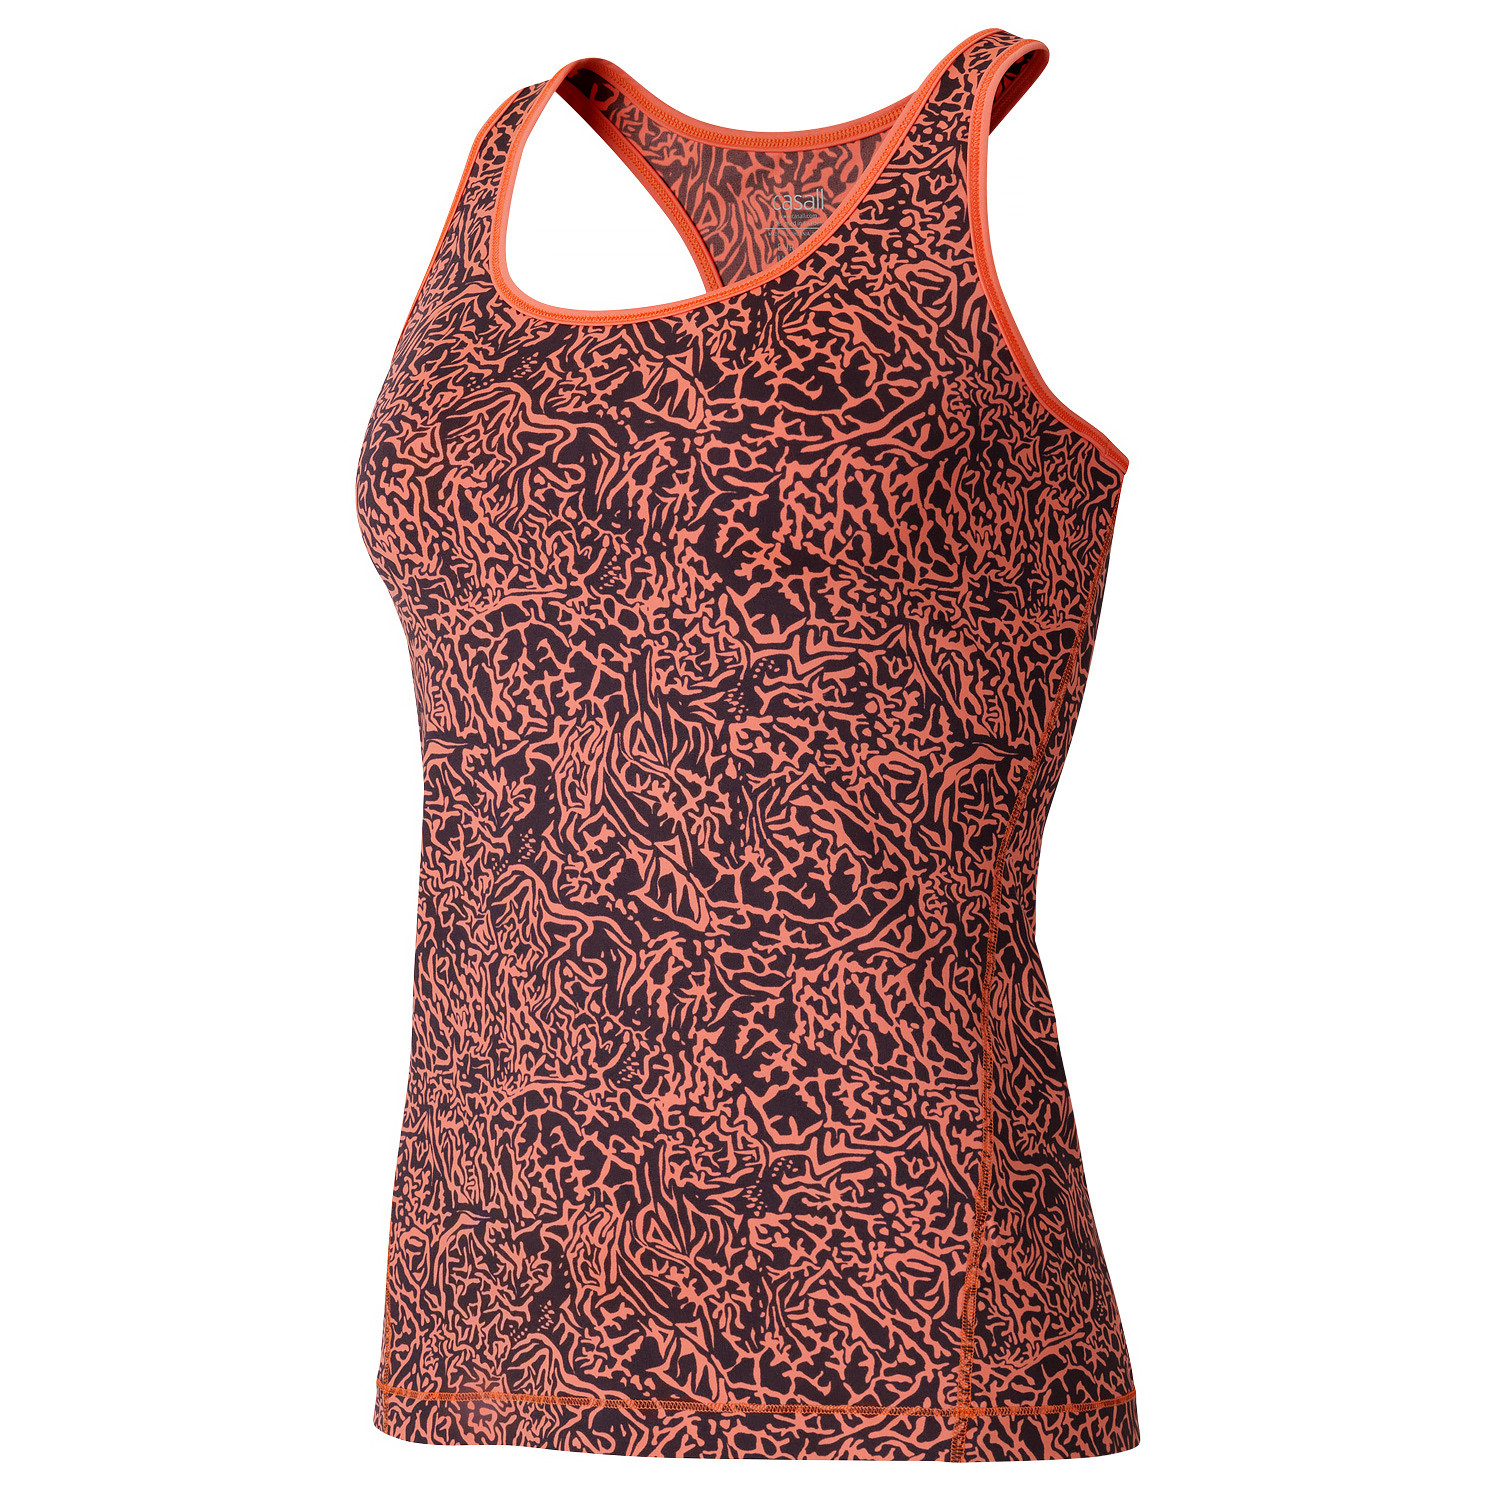 15174-casall-abstract-racerback-abstract-orange